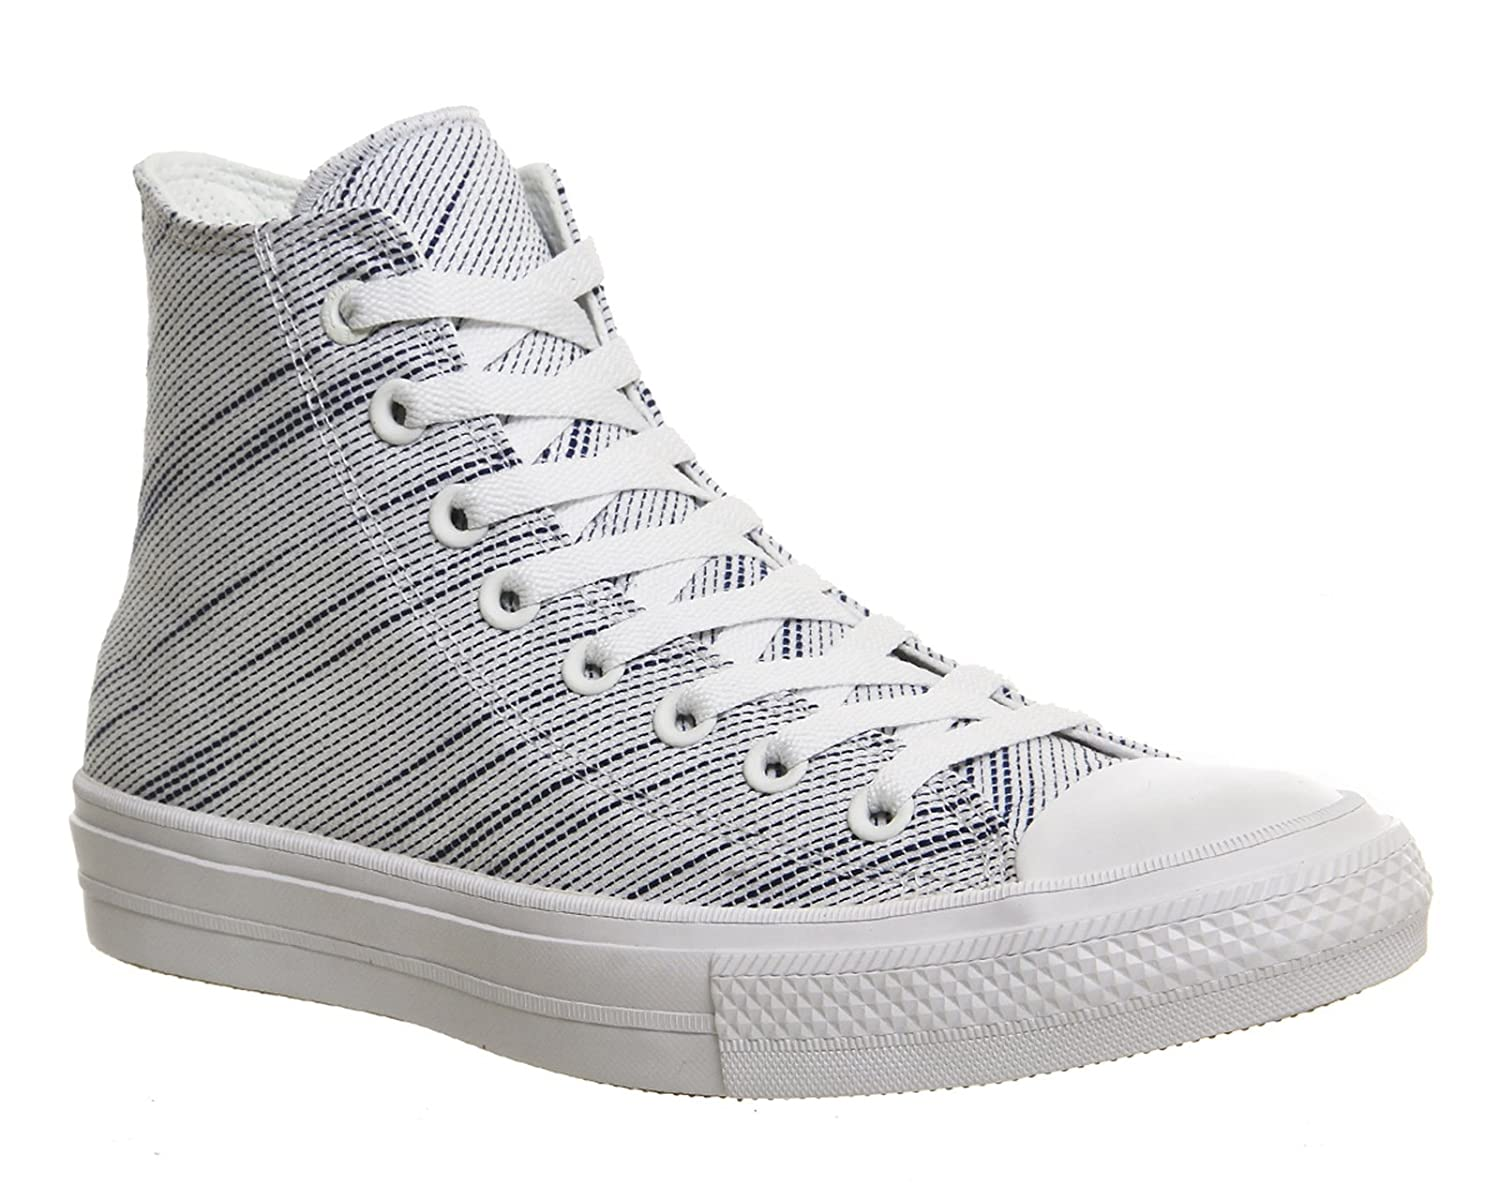 converse chuck taylor ii wit